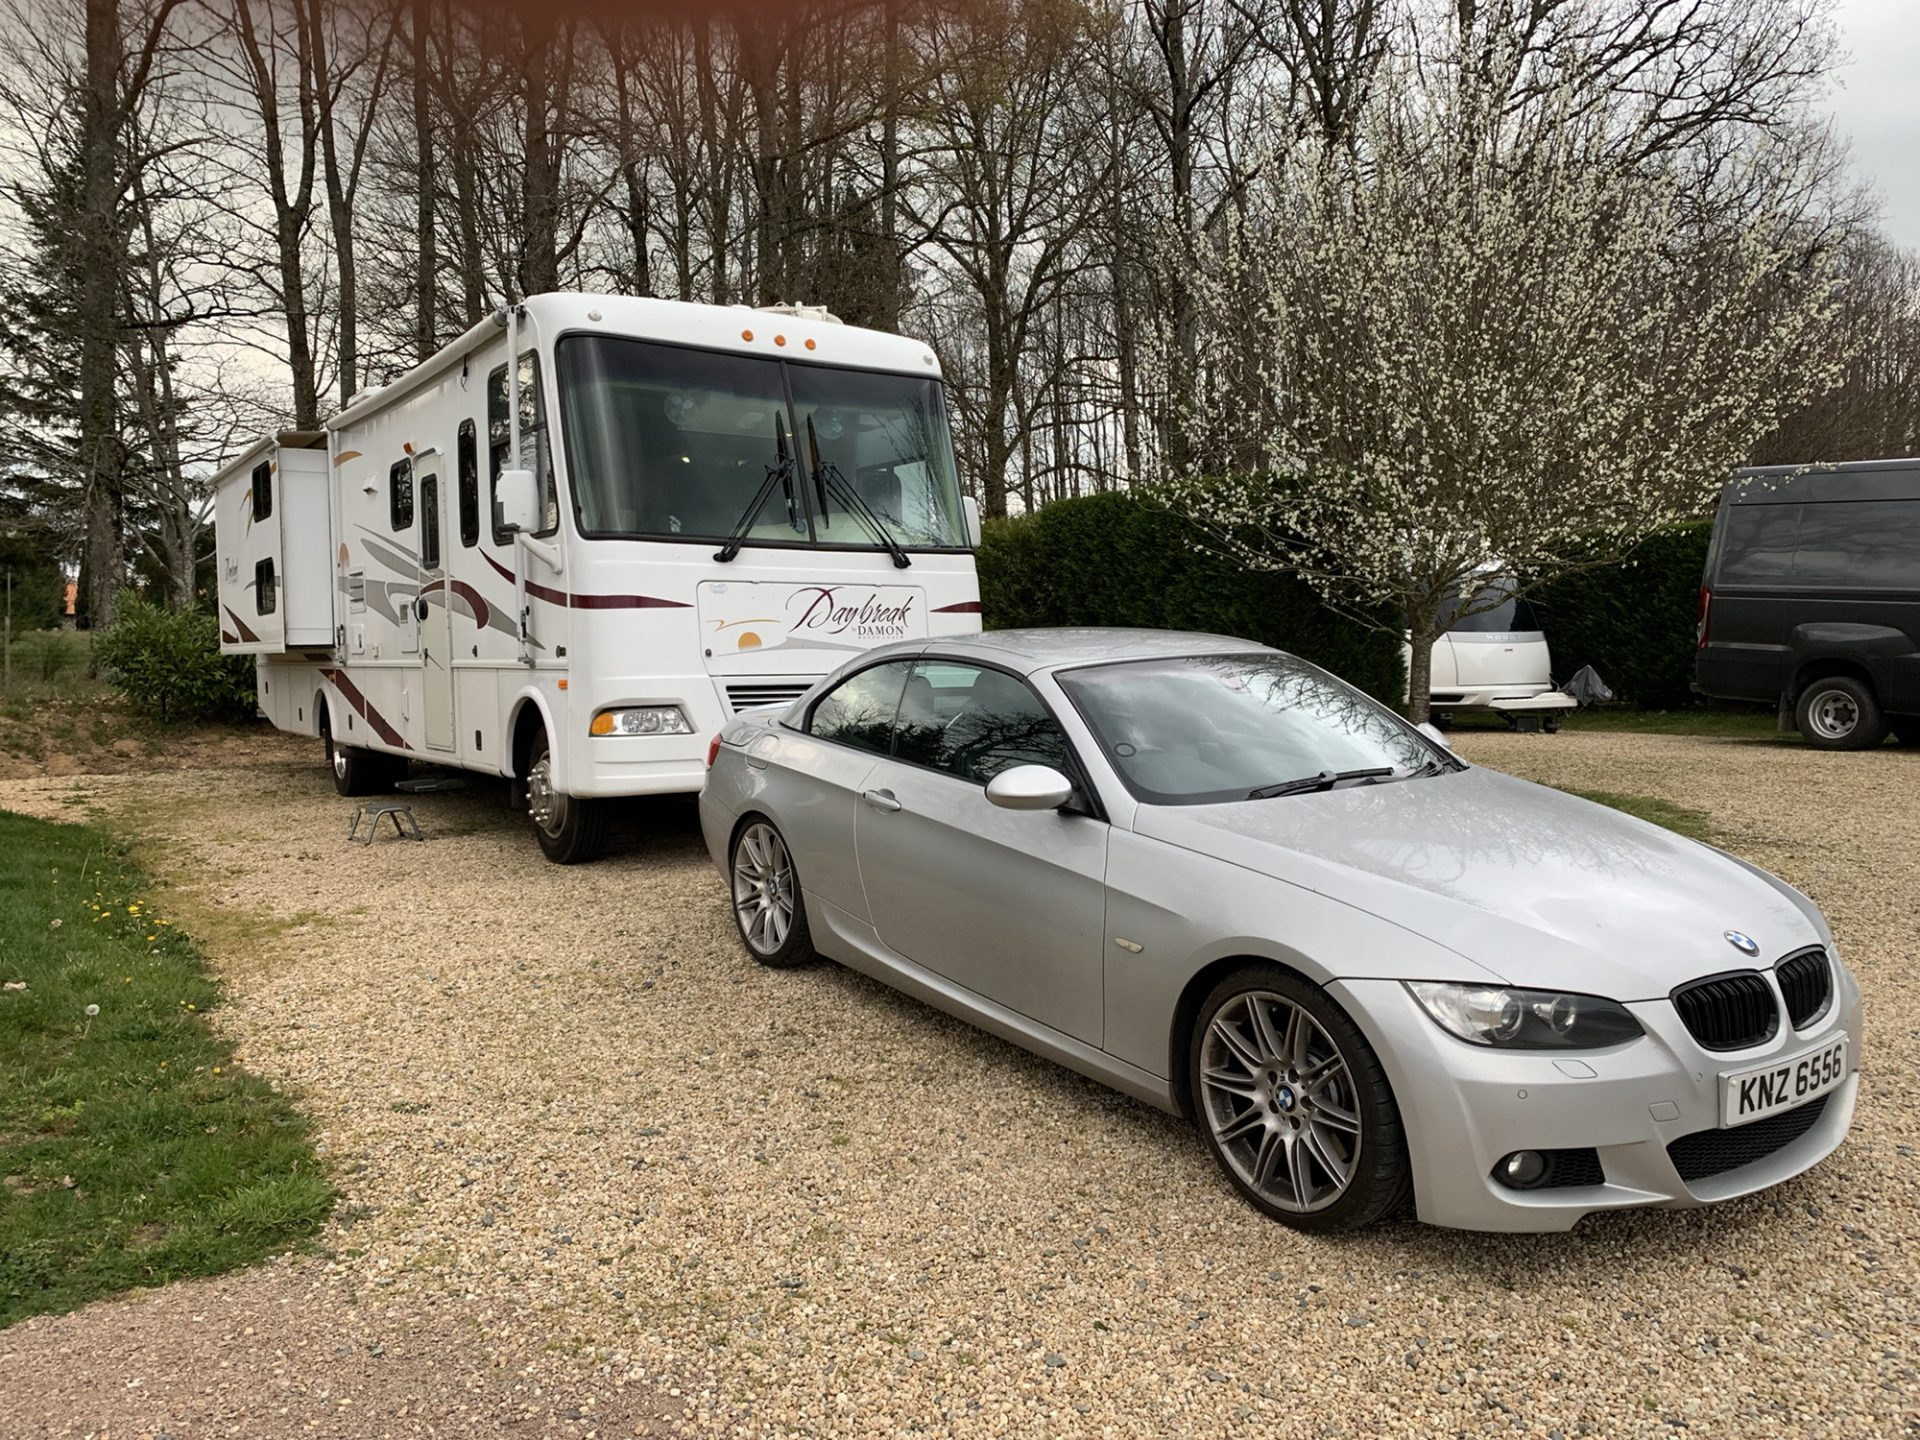 The RV is pitched with the BMW in front of it